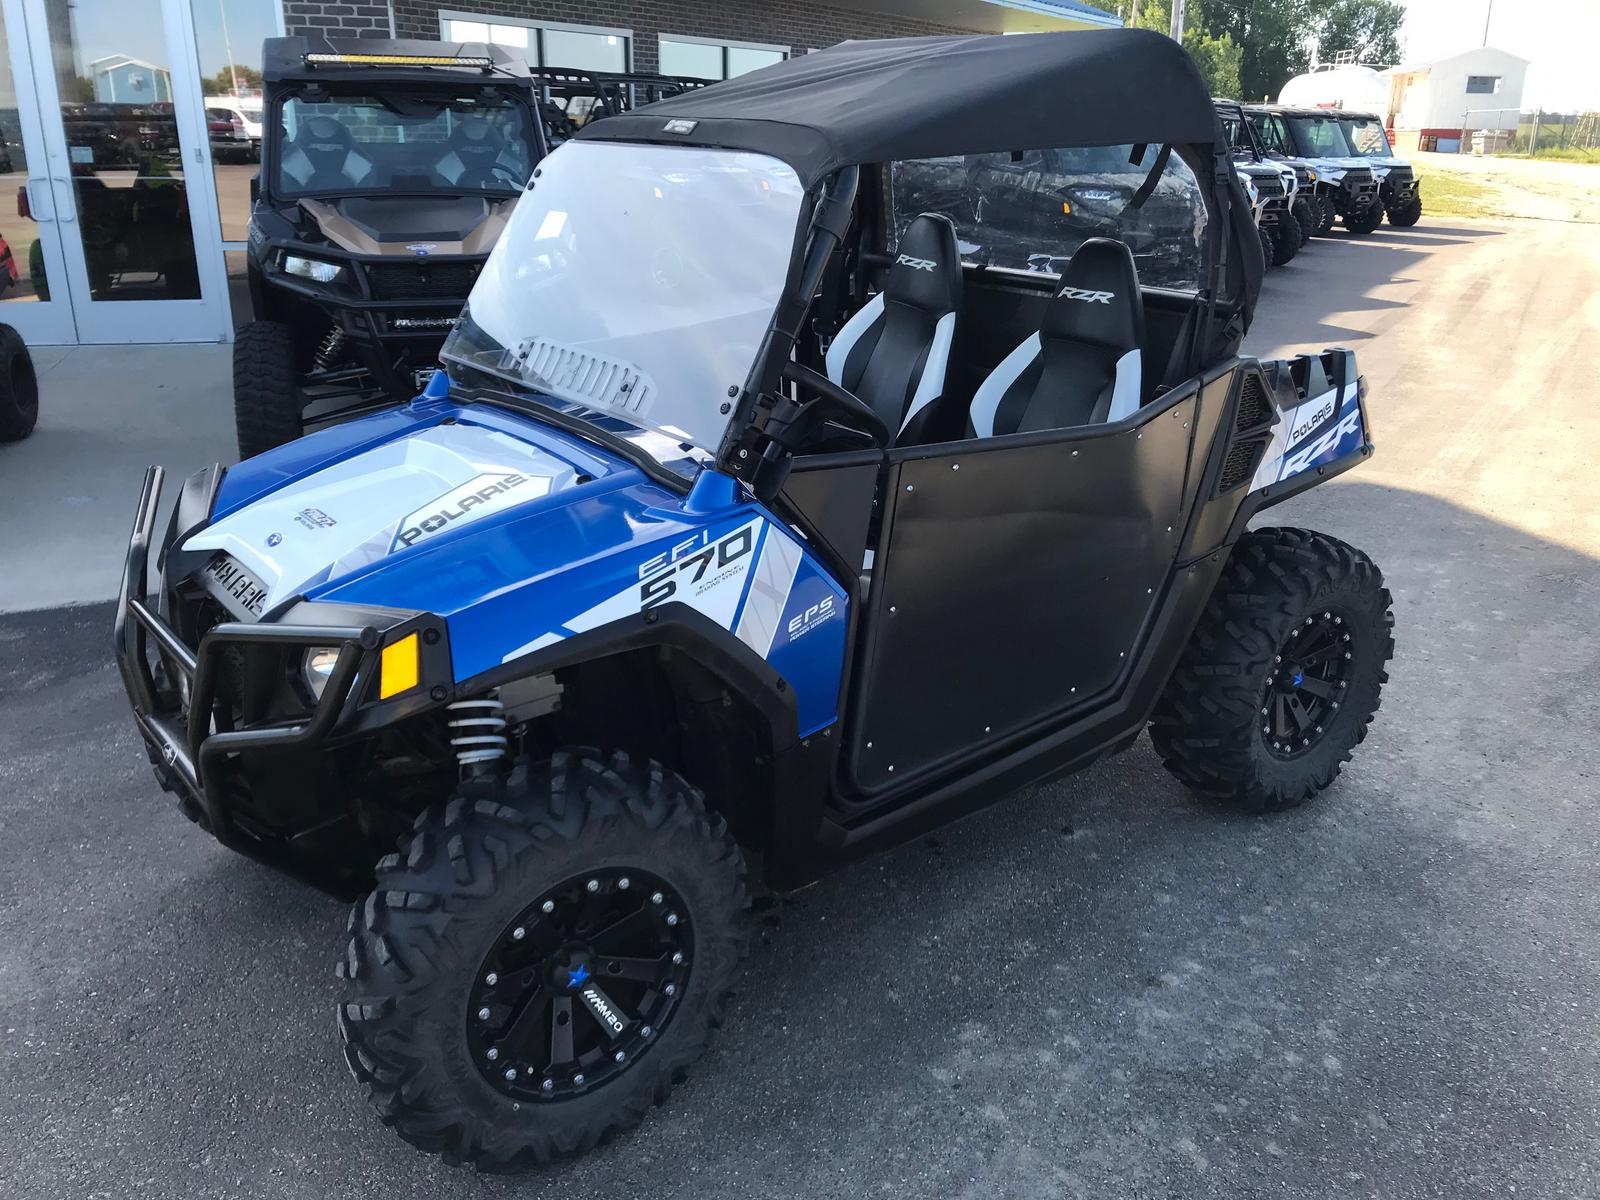 Inventory FINLEY MOTORSPORTS Finley, ND (800) 346-5398